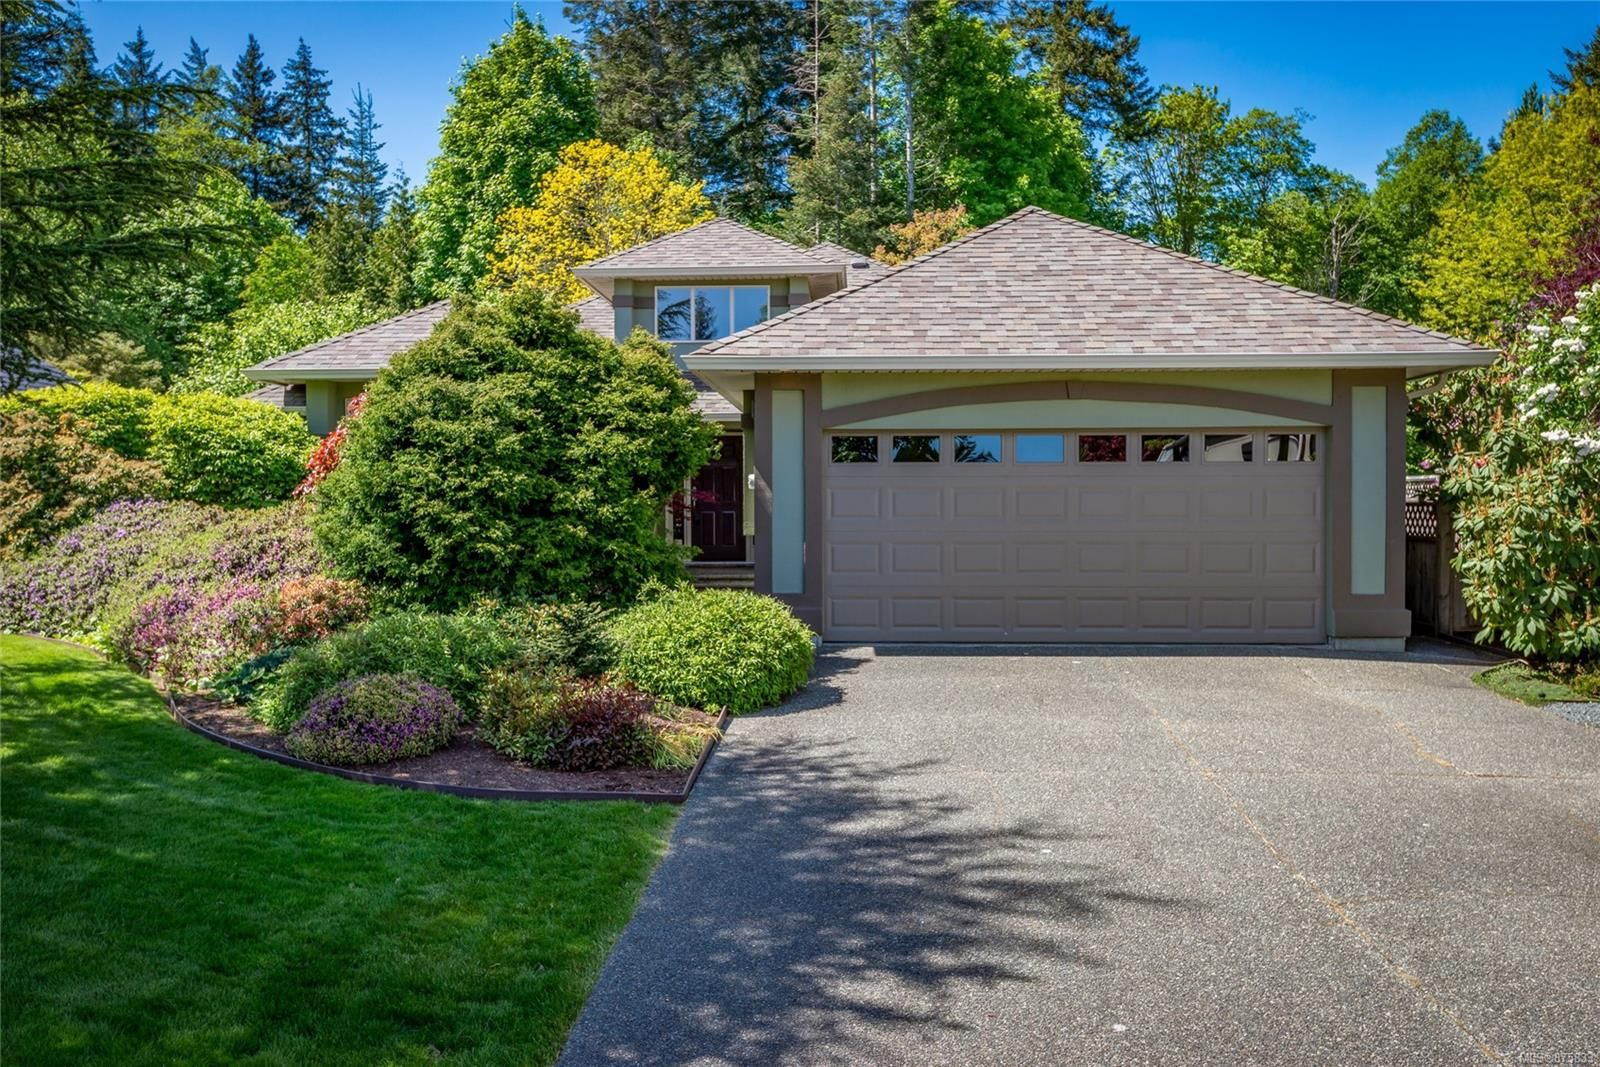 Main Photo: 2960 Willow Creek Rd in : CR Willow Point House for sale (Campbell River)  : MLS®# 875833